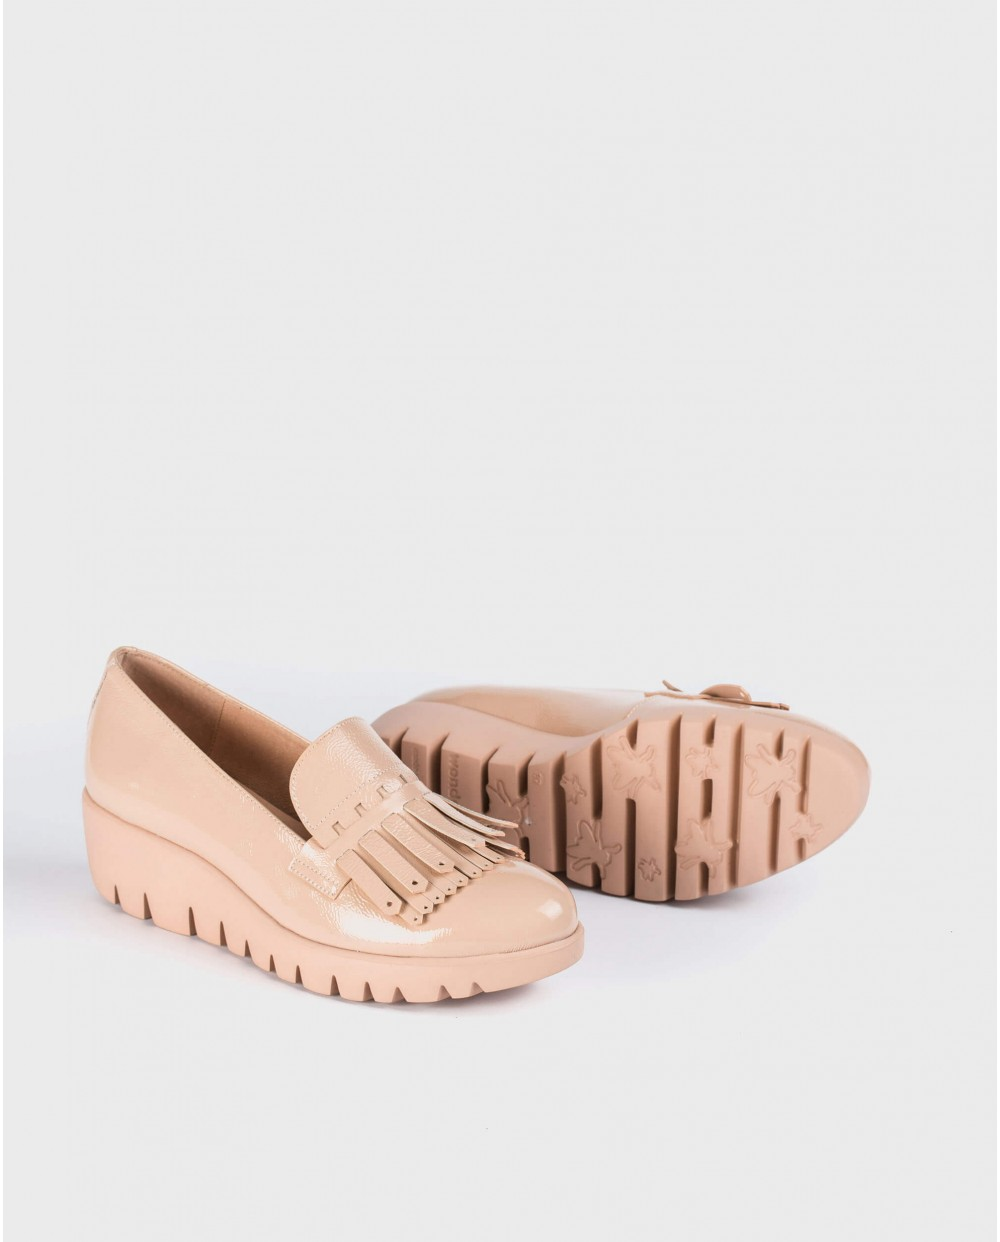 Wonders-Wedges-Patent leather moccasin with fringe detail